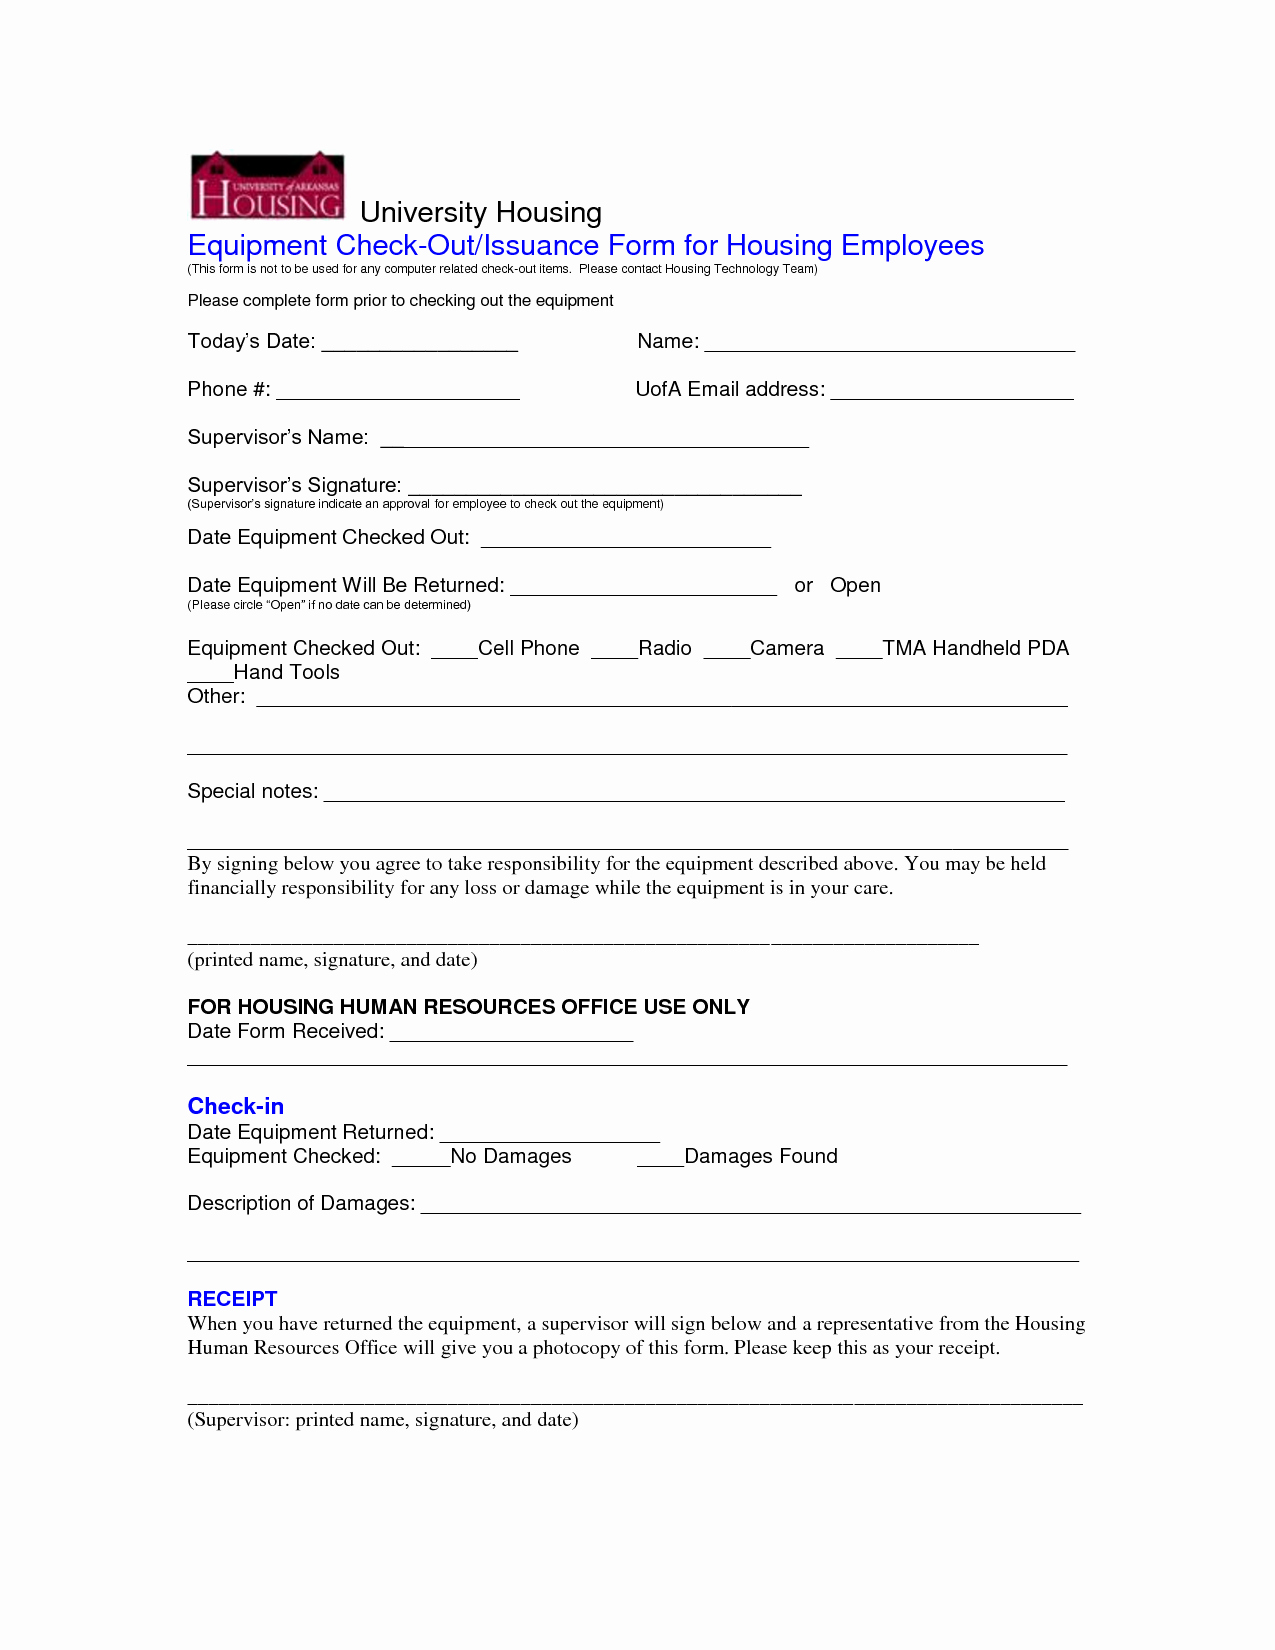 Equipment Checkout form Template Fresh Best S Of Employee Equipment Check Out form